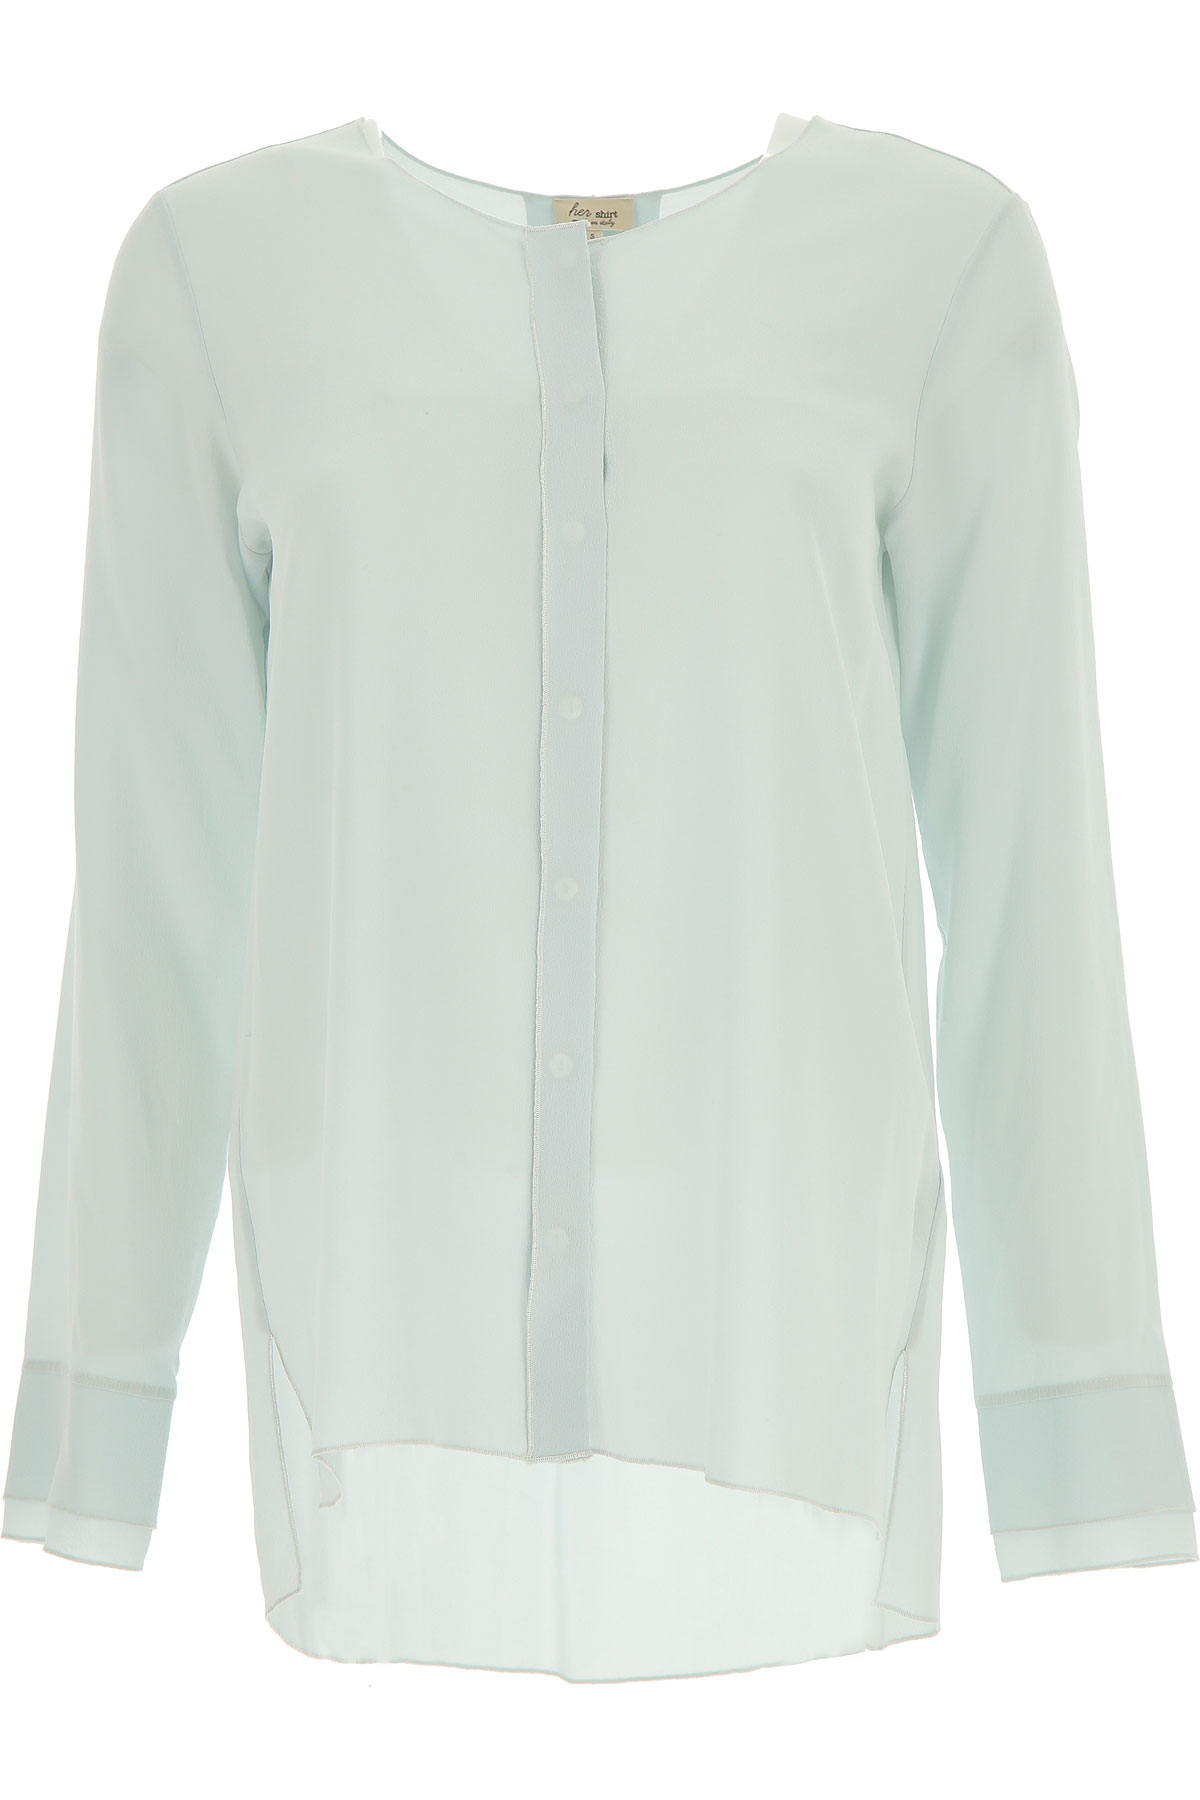 Image of Her Shirt Shirt for Women On Sale, Ice, Silk, 2017, 2 4 6 8